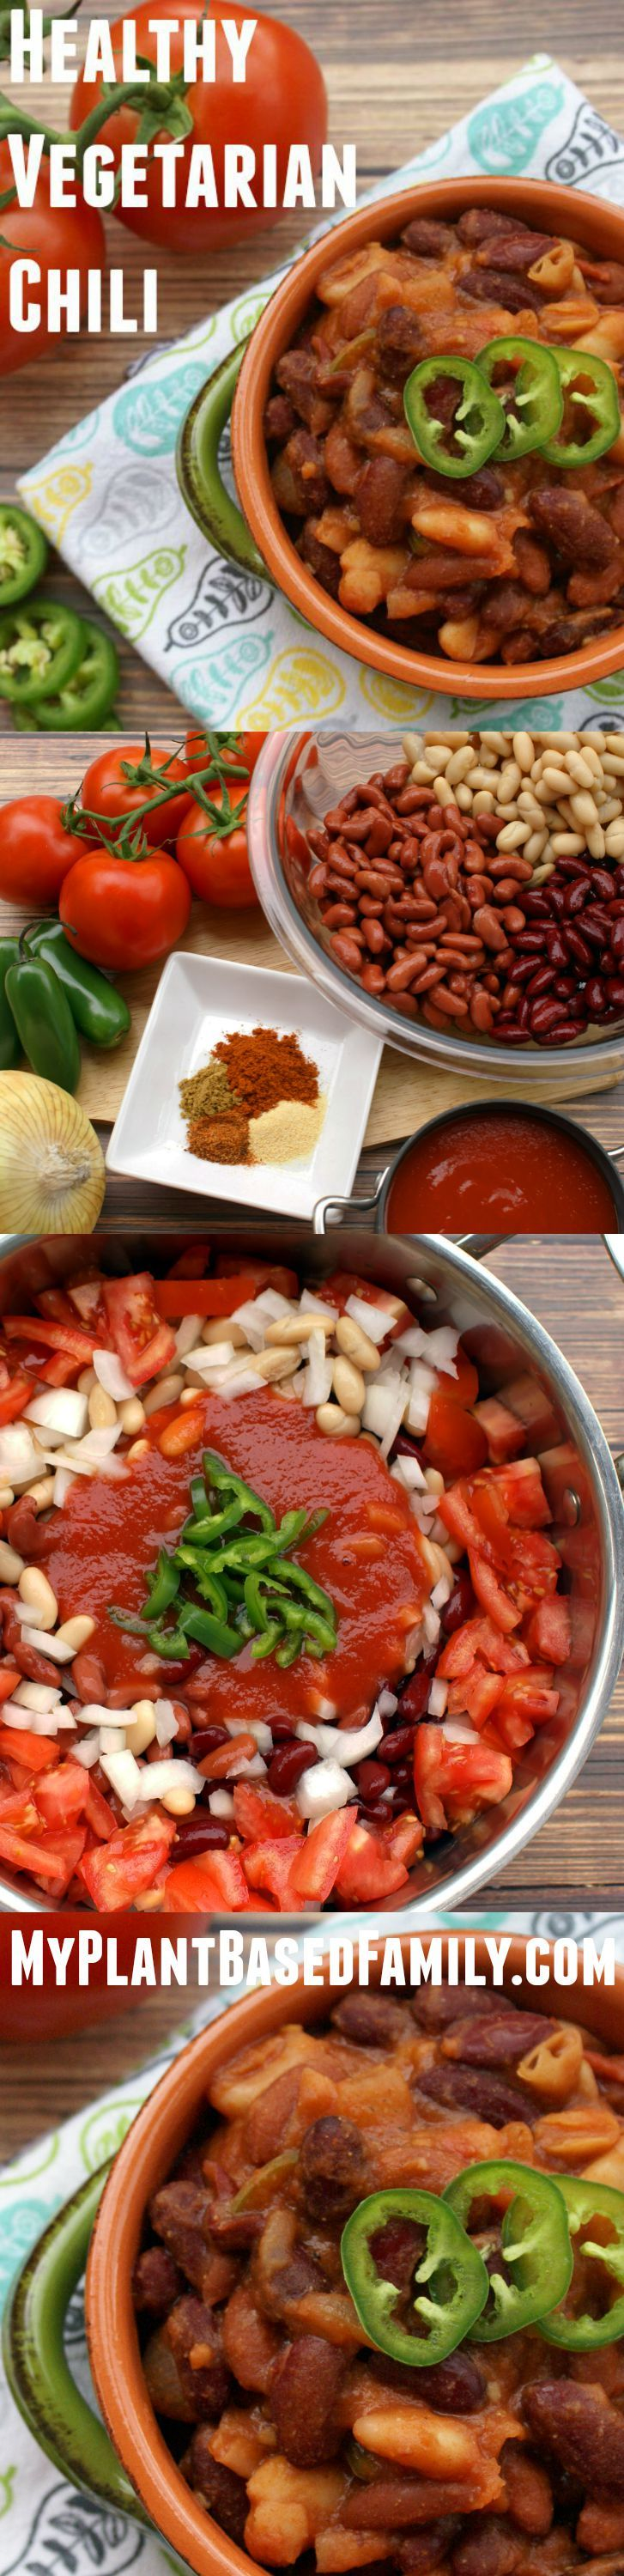 Heart-Healthy Vegetarian Chili (Texas style chili) is great for fall or winter. Cook it stove top or in the Crock Pot. This meatless (vegan) chili is perfect comfort food. Also gluten-free!